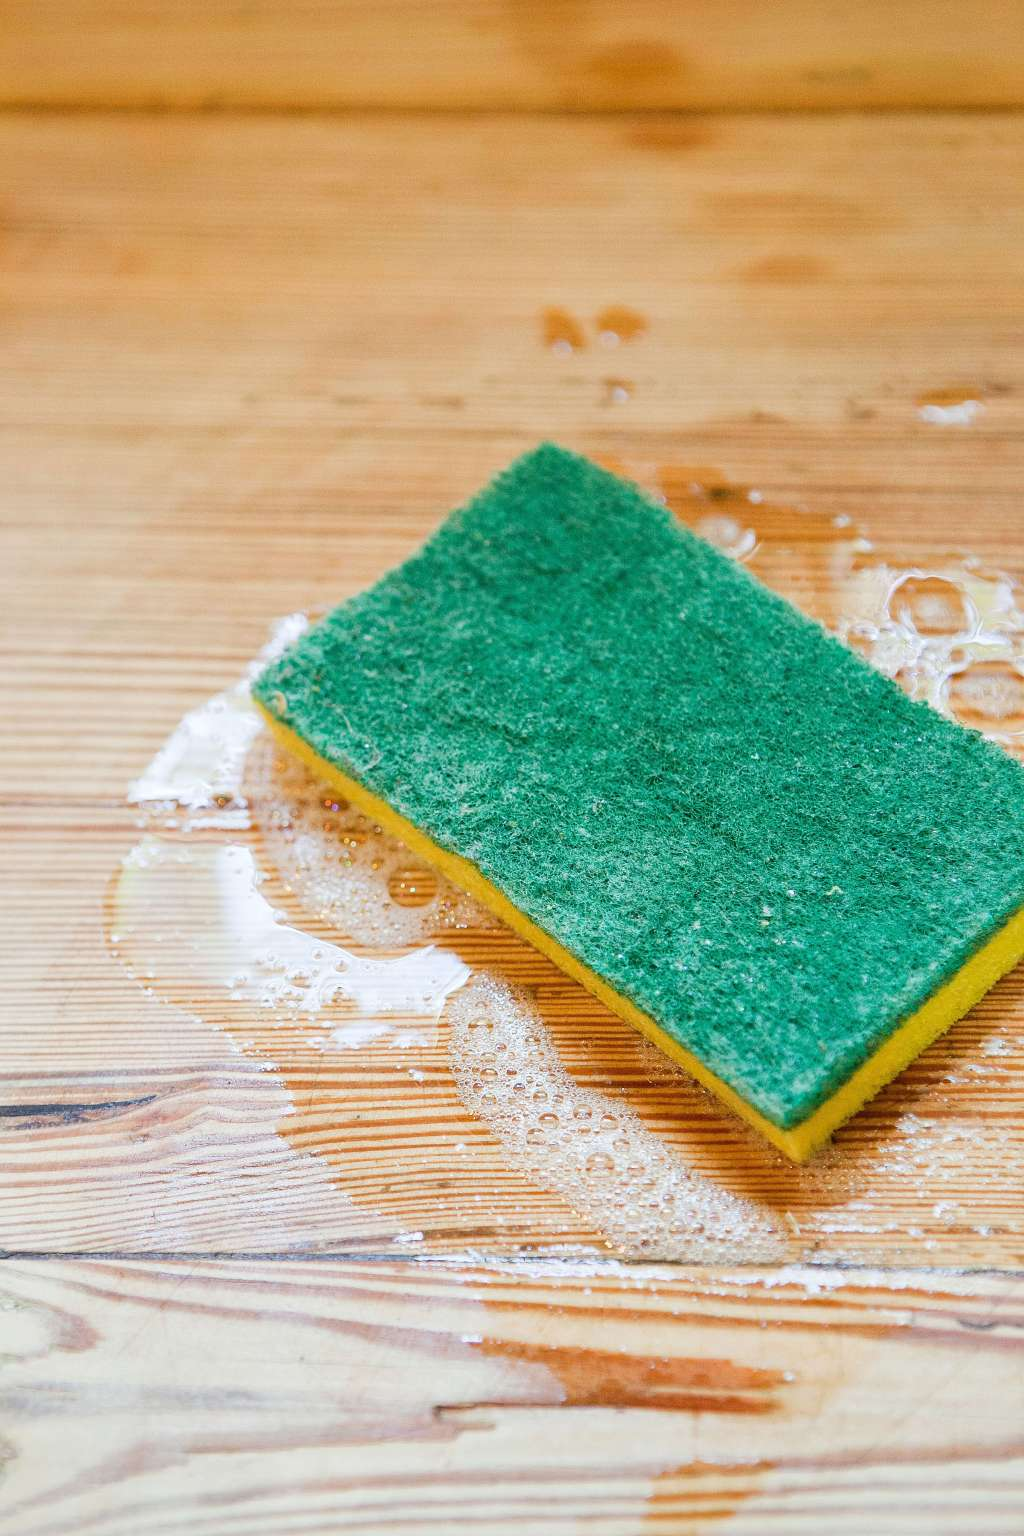 How To Clean Butcher Block Countertops Kitchn U Frezz Multipurpose Antimicrobial Spray